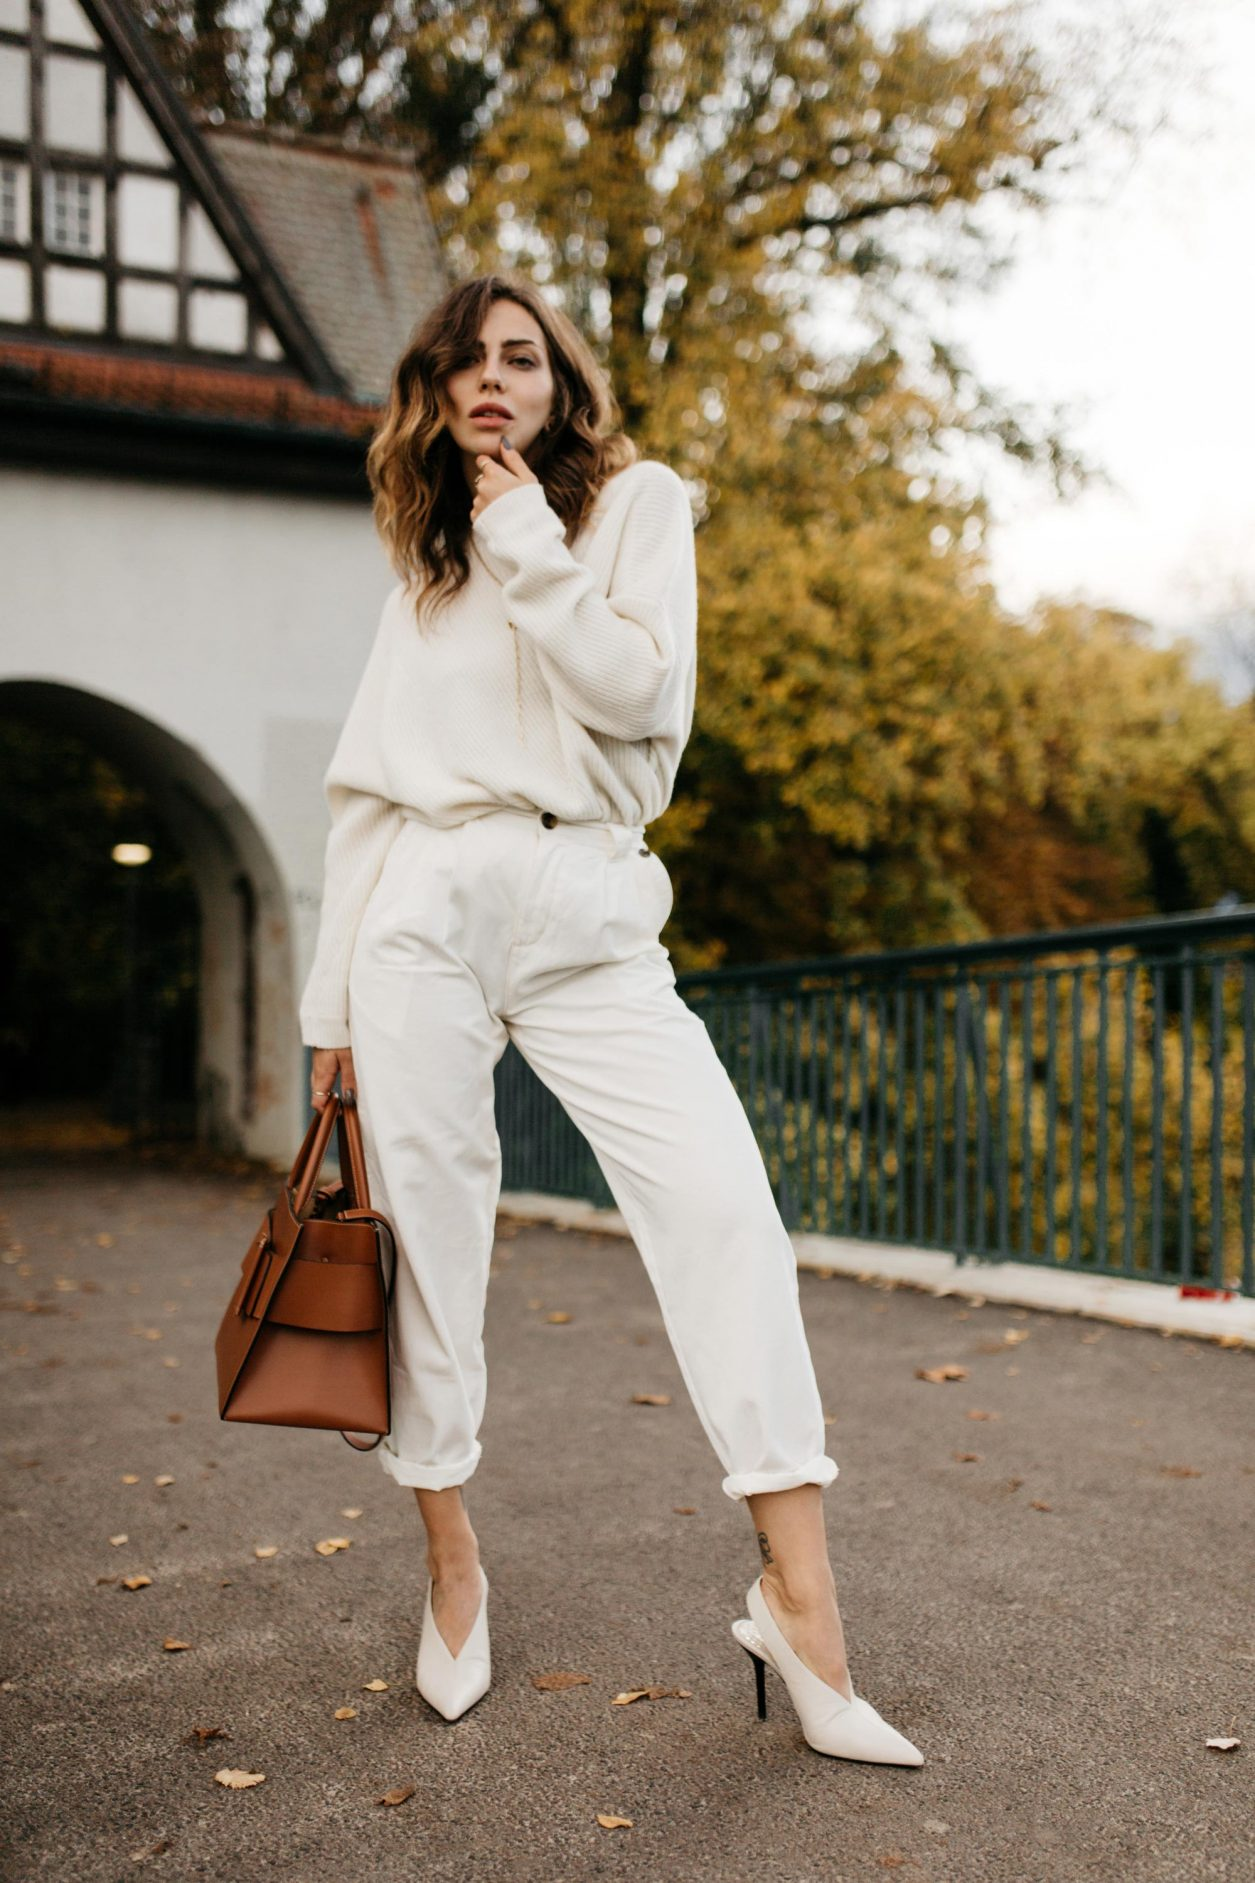 Masha Sedgwick wearing off-white fall outfit | Styling tip: add fine jewelry by Thomas Sabo and brown leather tote bag by Boyy, outfit: white mom jeans by Topshop, white knit pullover by Lala Berlin, white leather pumps by Zara (Anzeige), Berlin Treptower park, aw19 weekend outfit